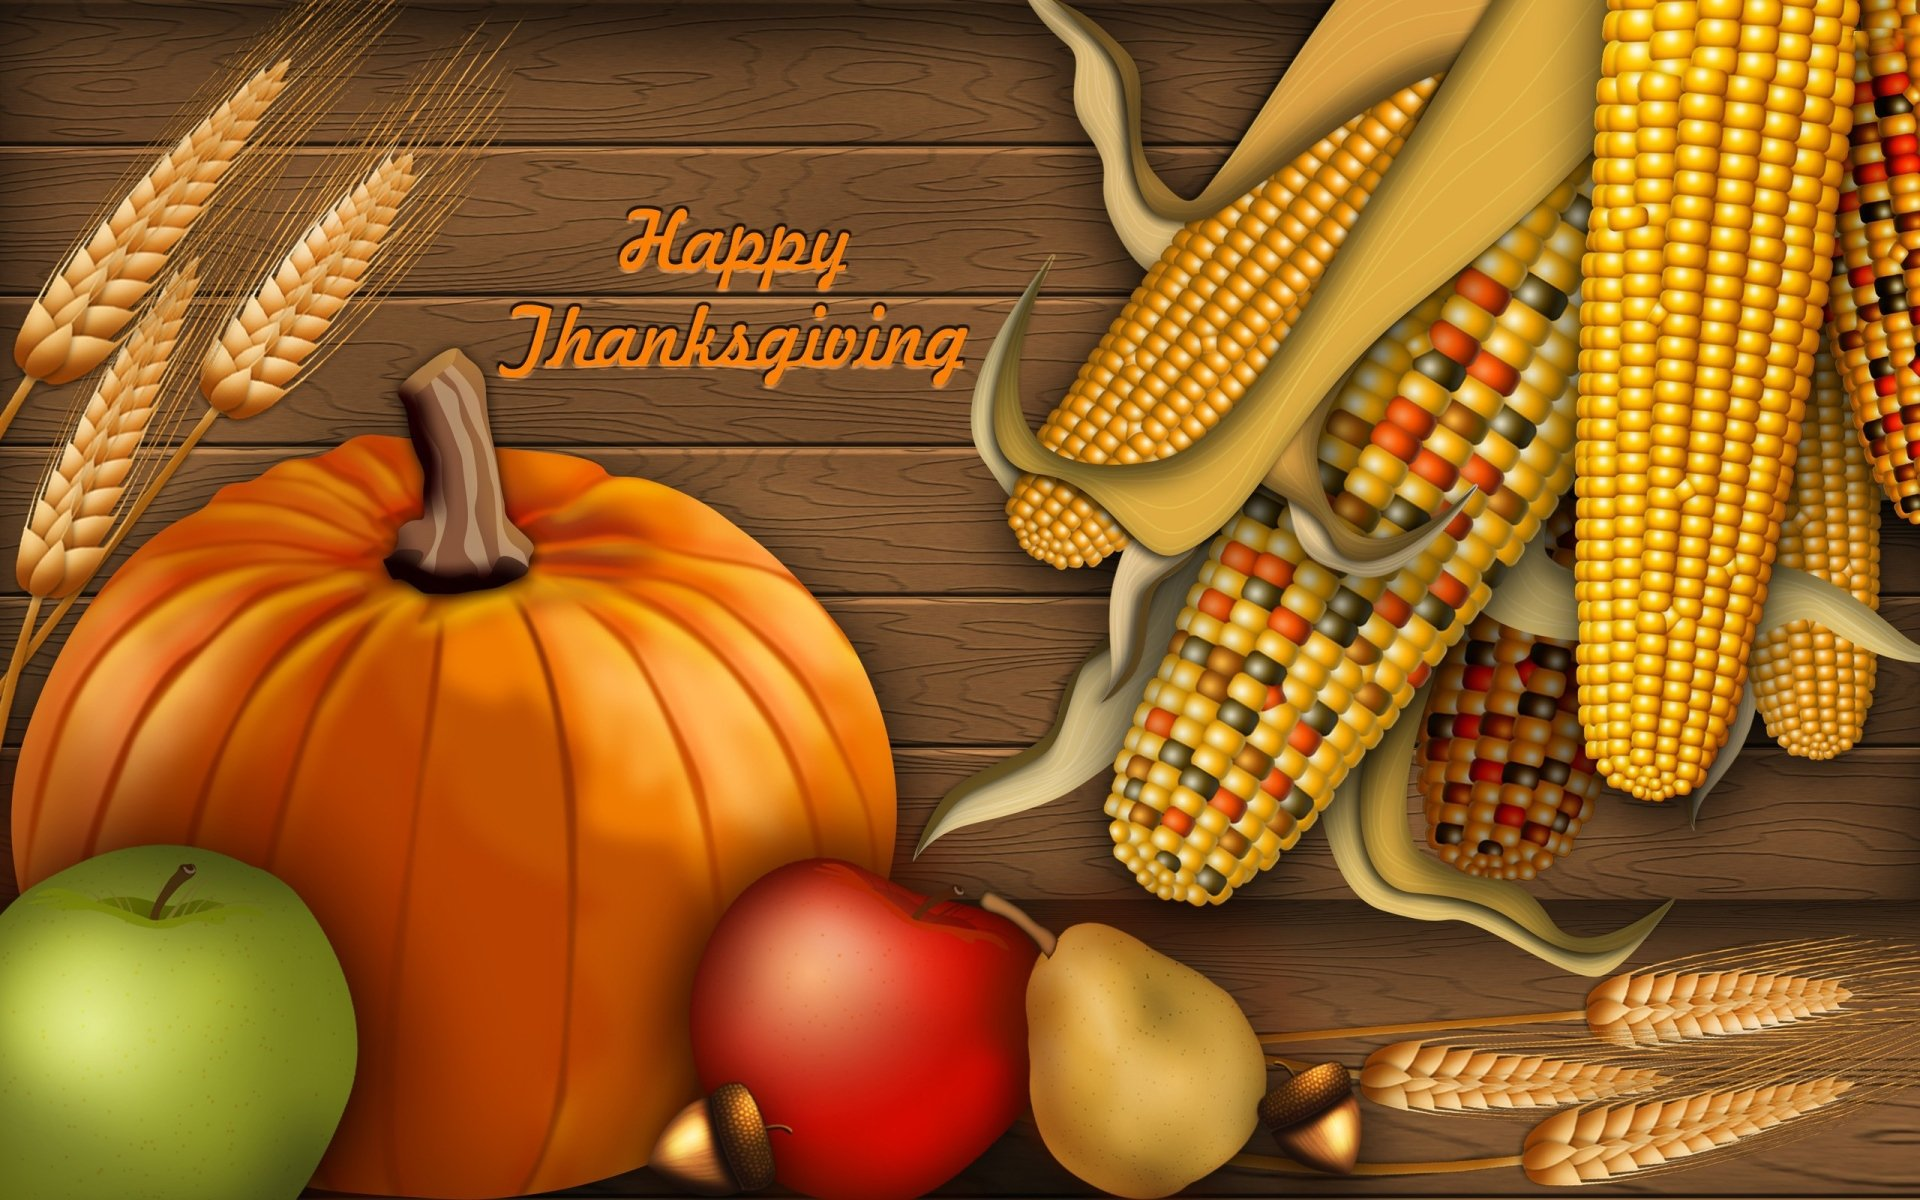 Holiday - Thanksgiving  Wallpaper